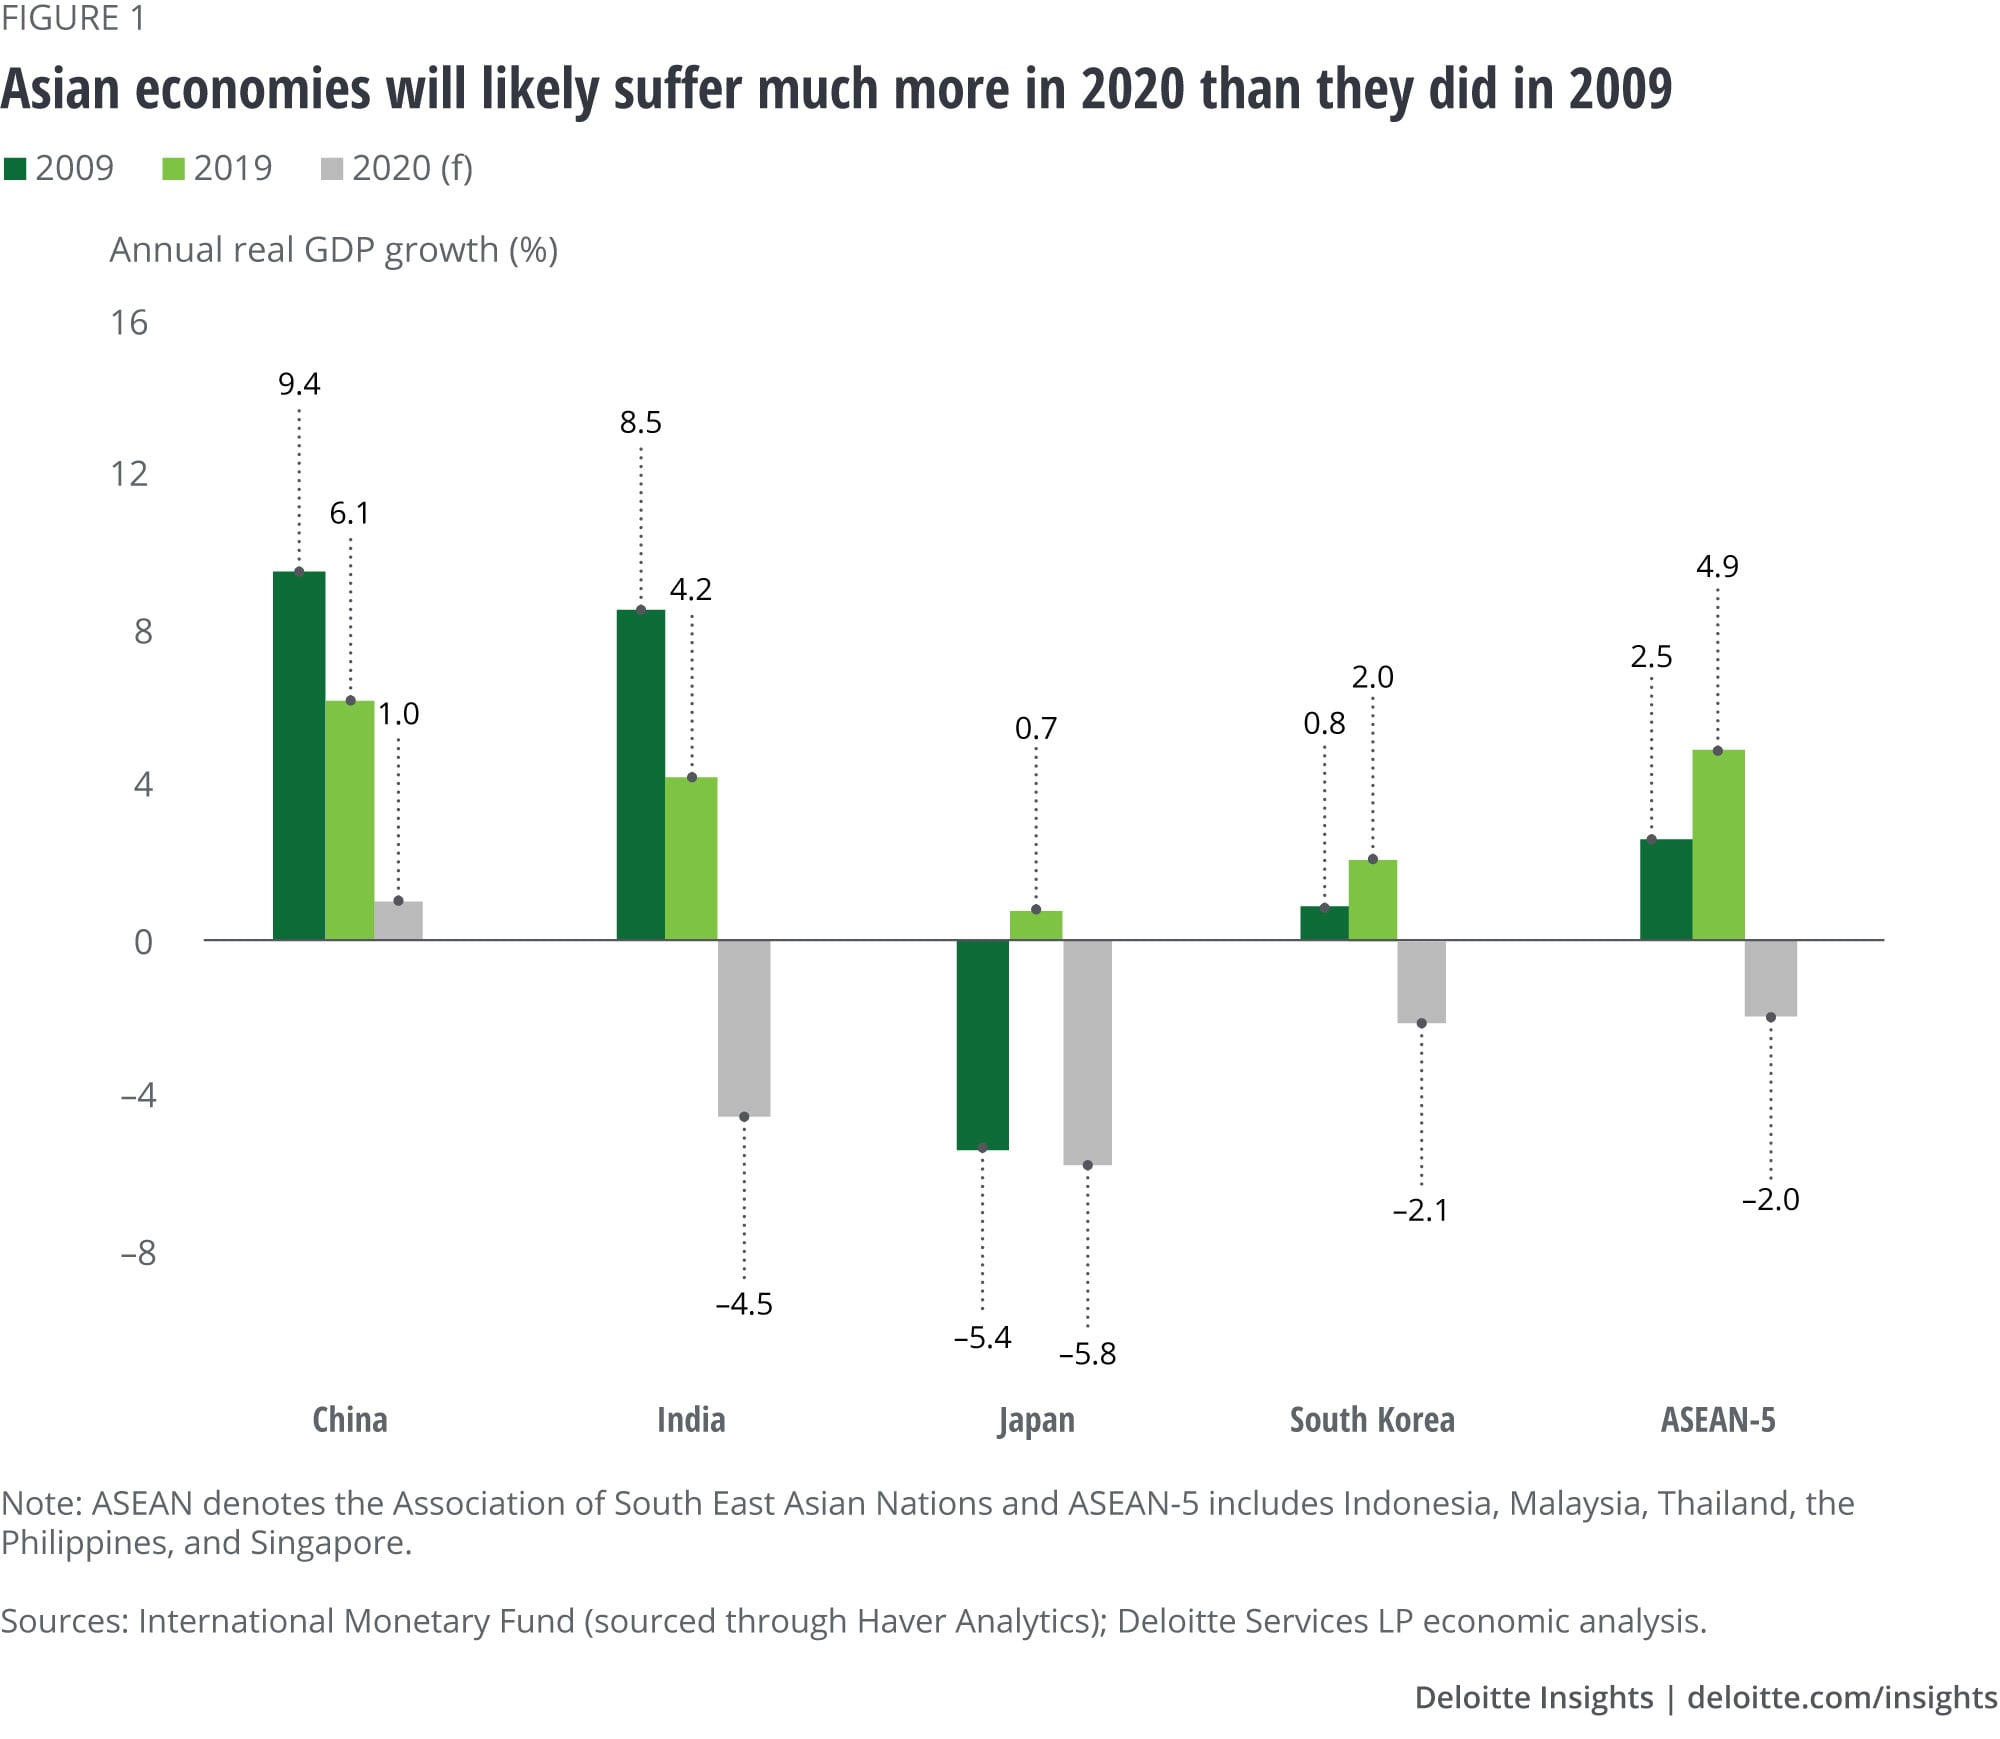 Asian economies will likely suffer much more in 2020 than they did in 2009